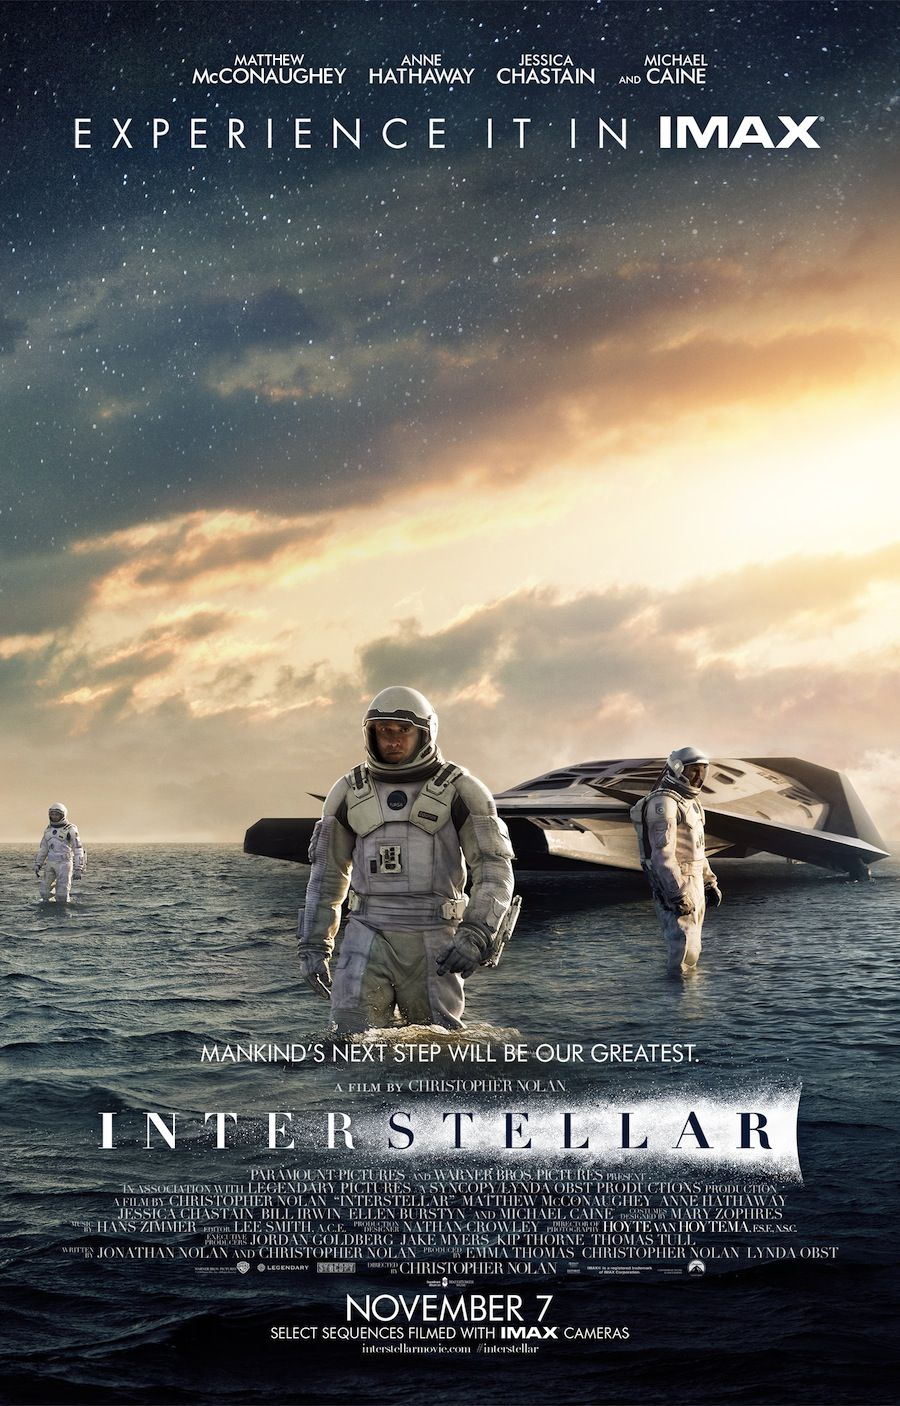 Poster from the movie Interstellar.